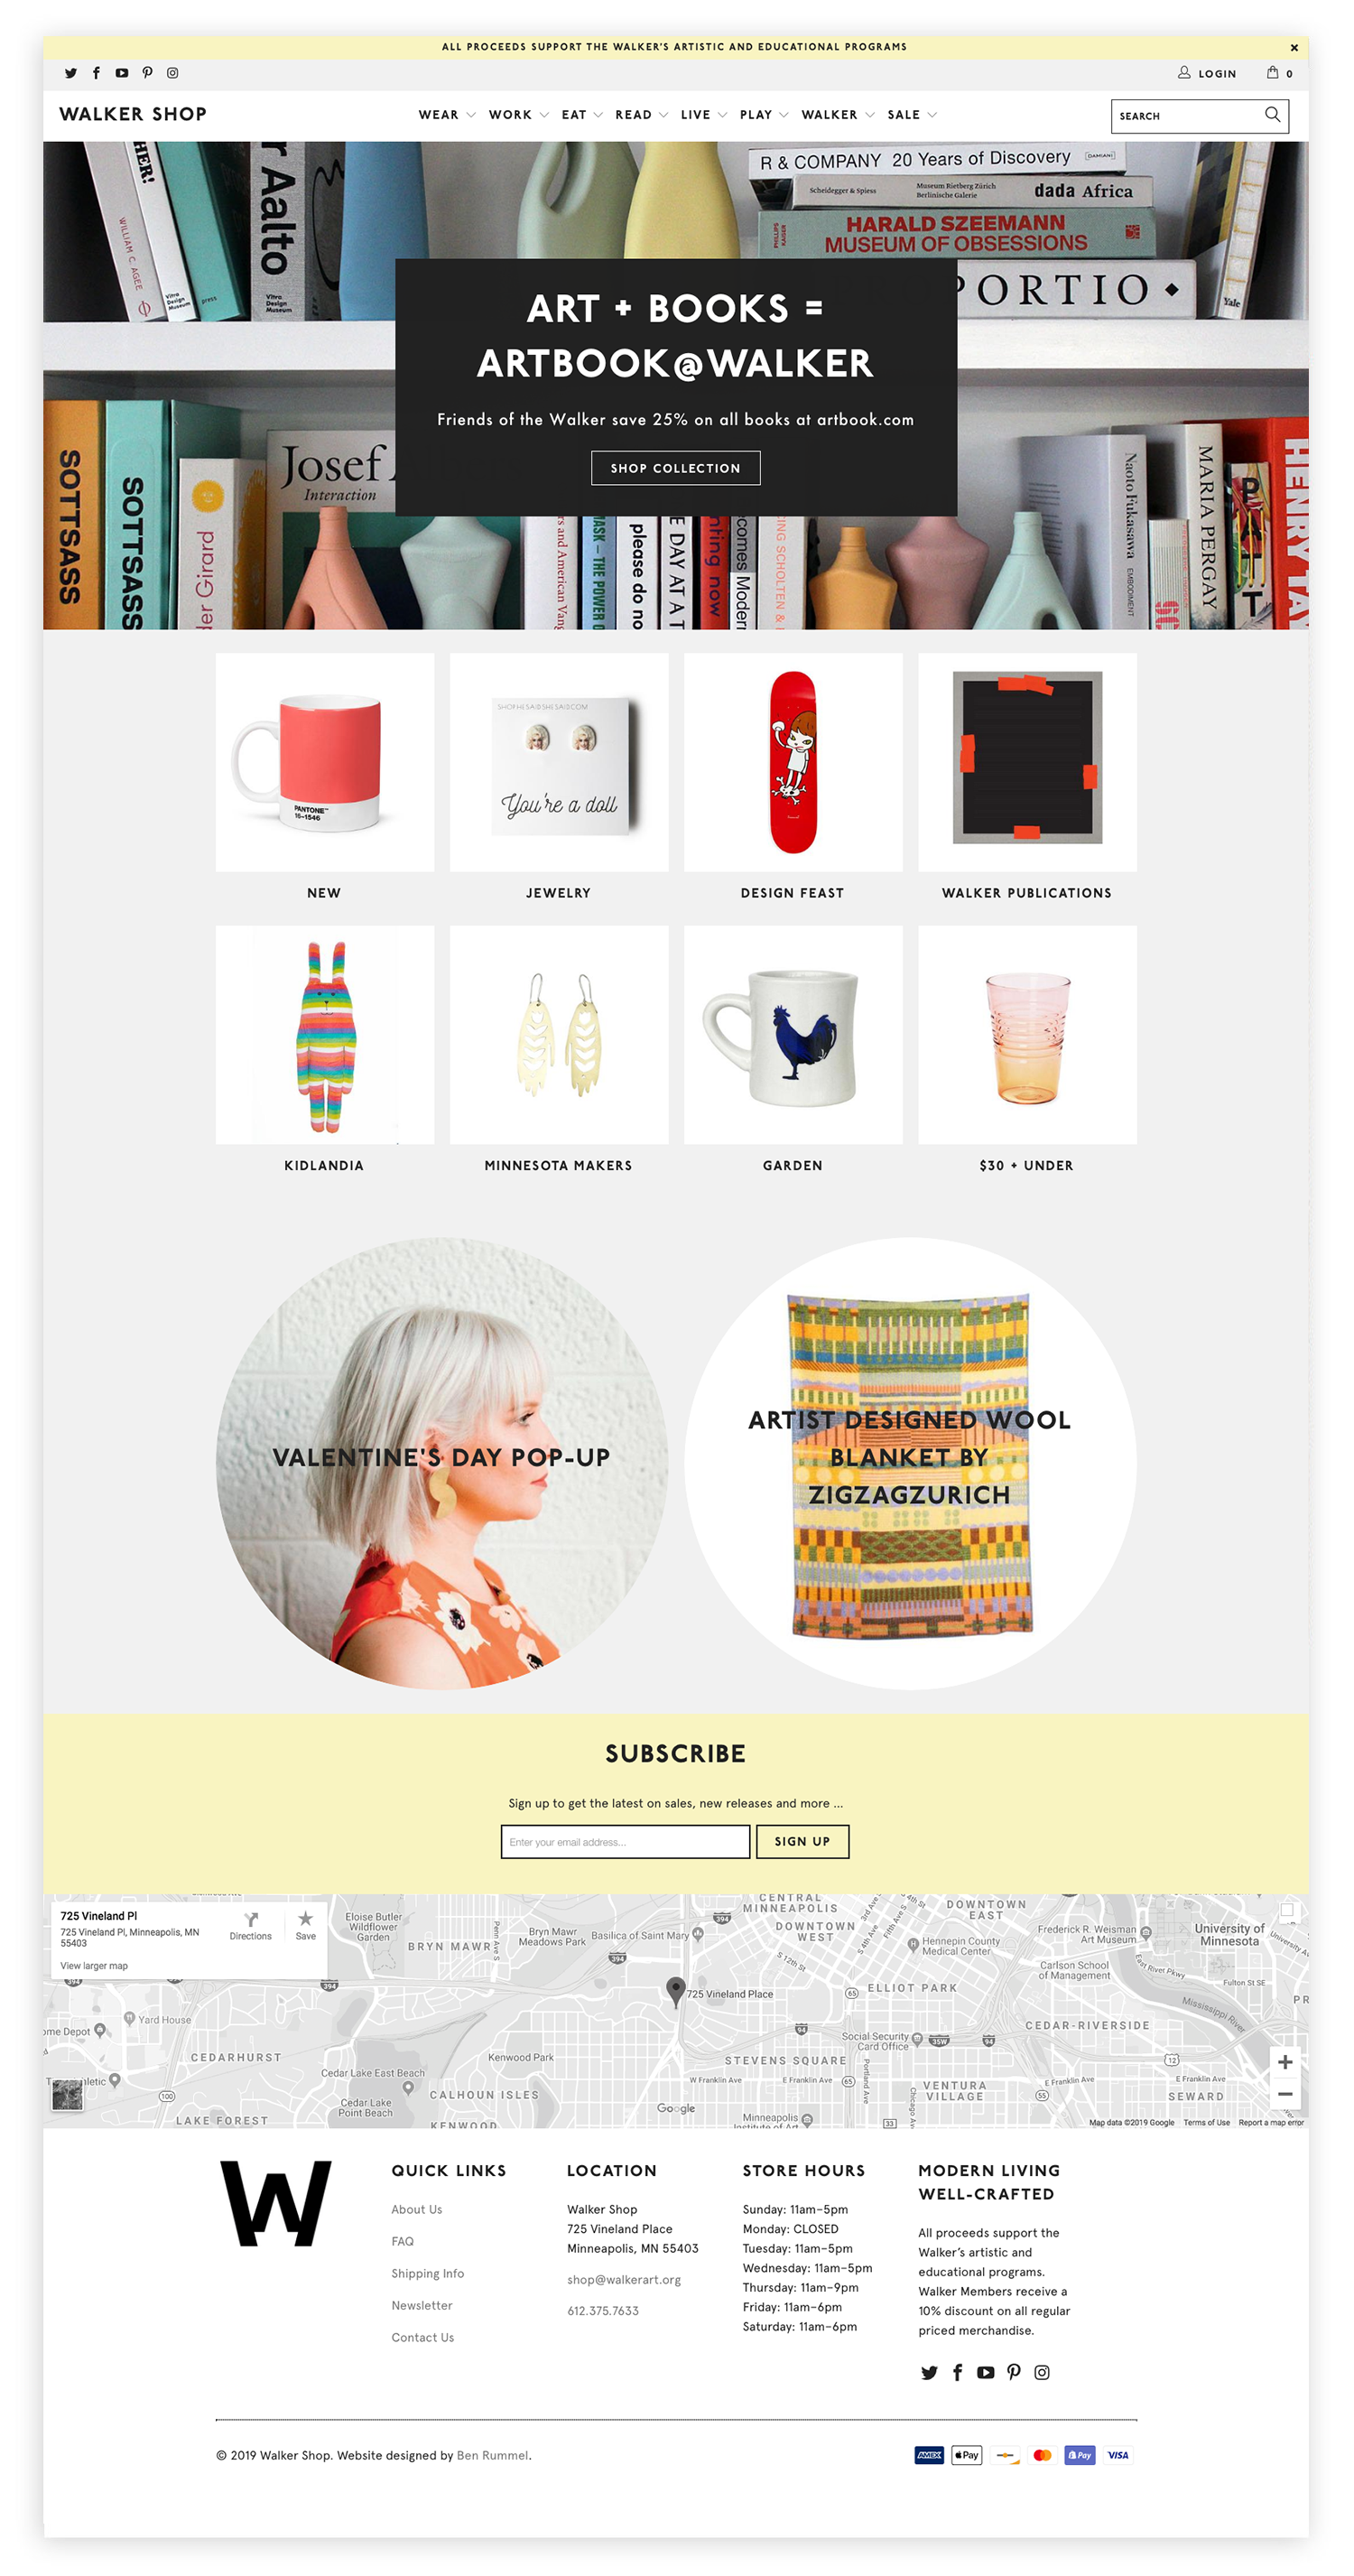 walker-shop-site-homepage-new-ben-rummel-design.png